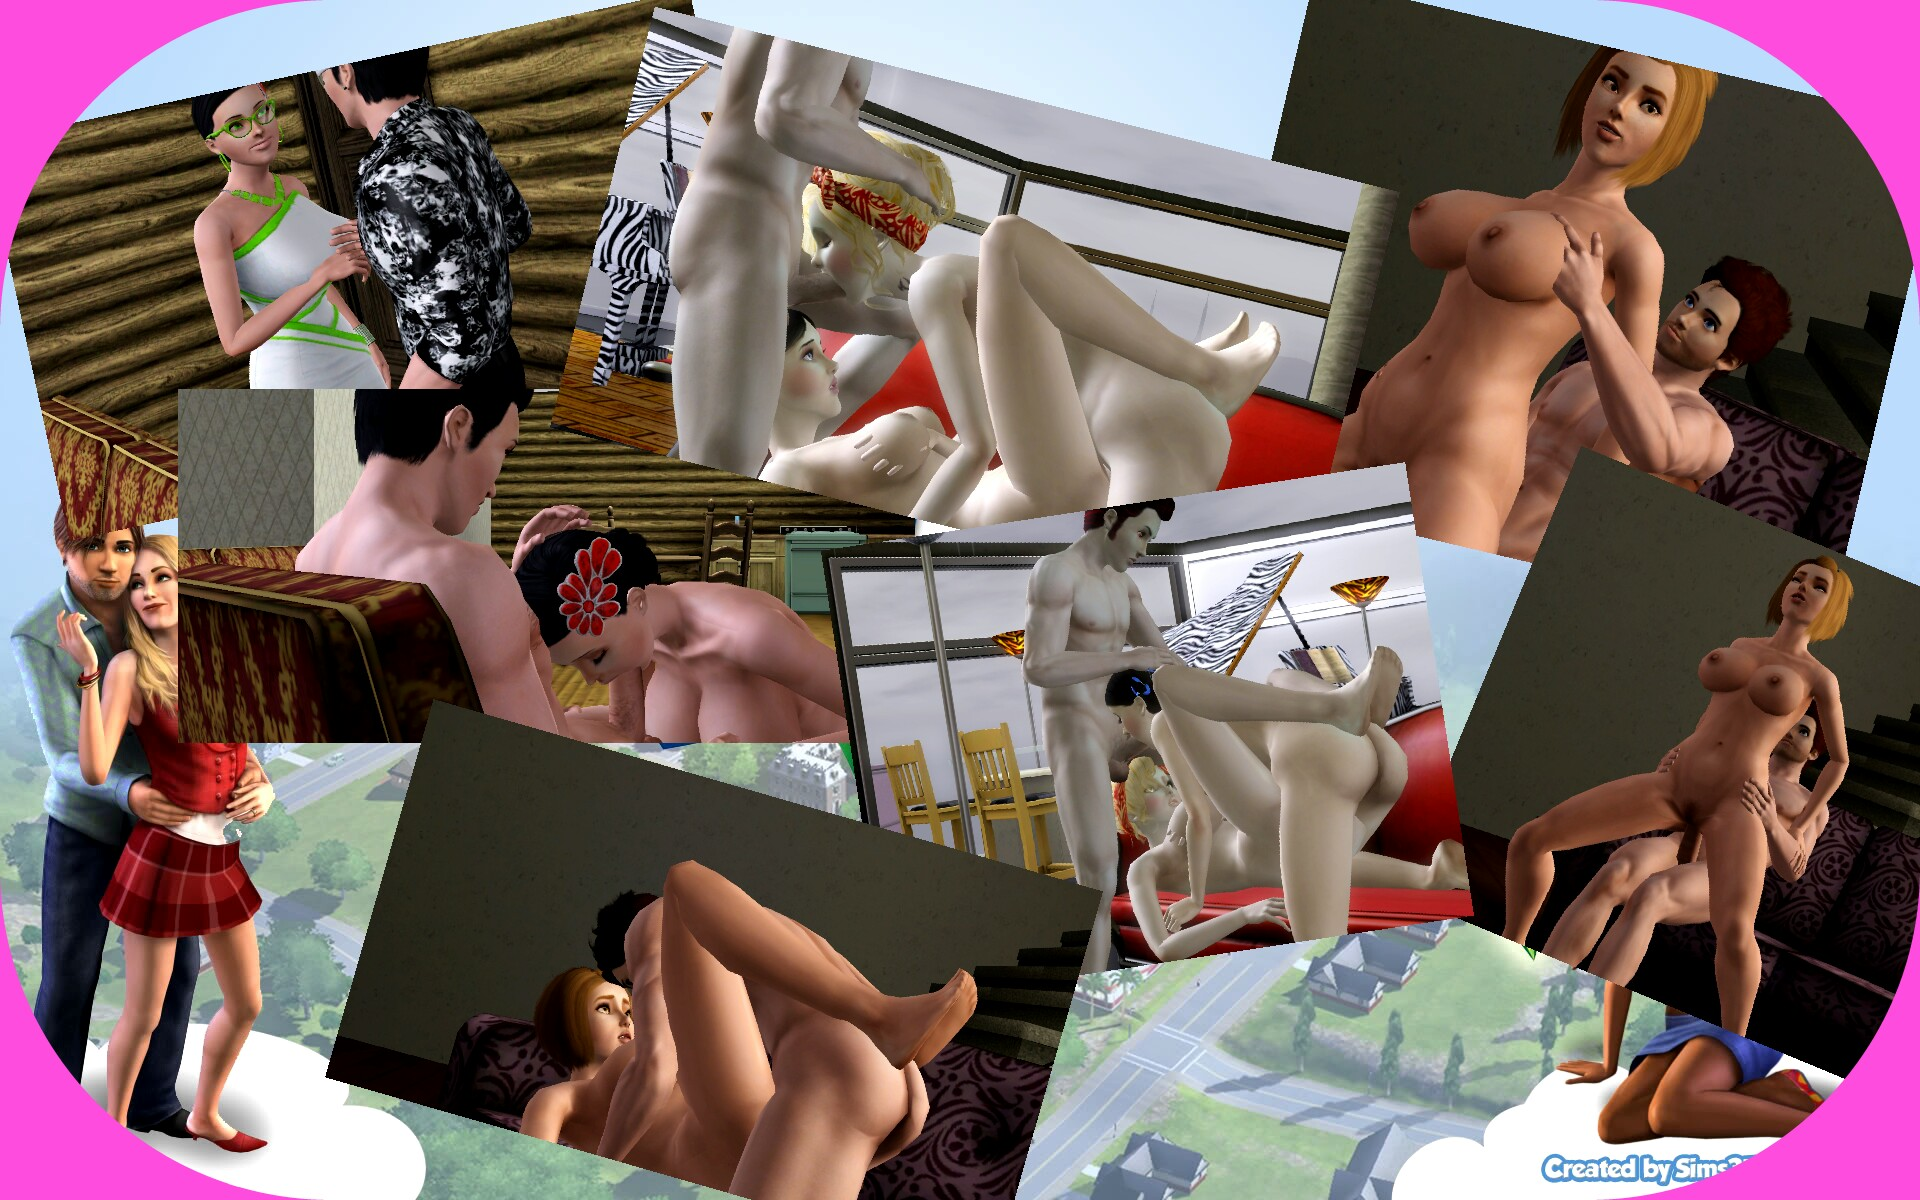 Foto sex game the sims 2 fucking scenes